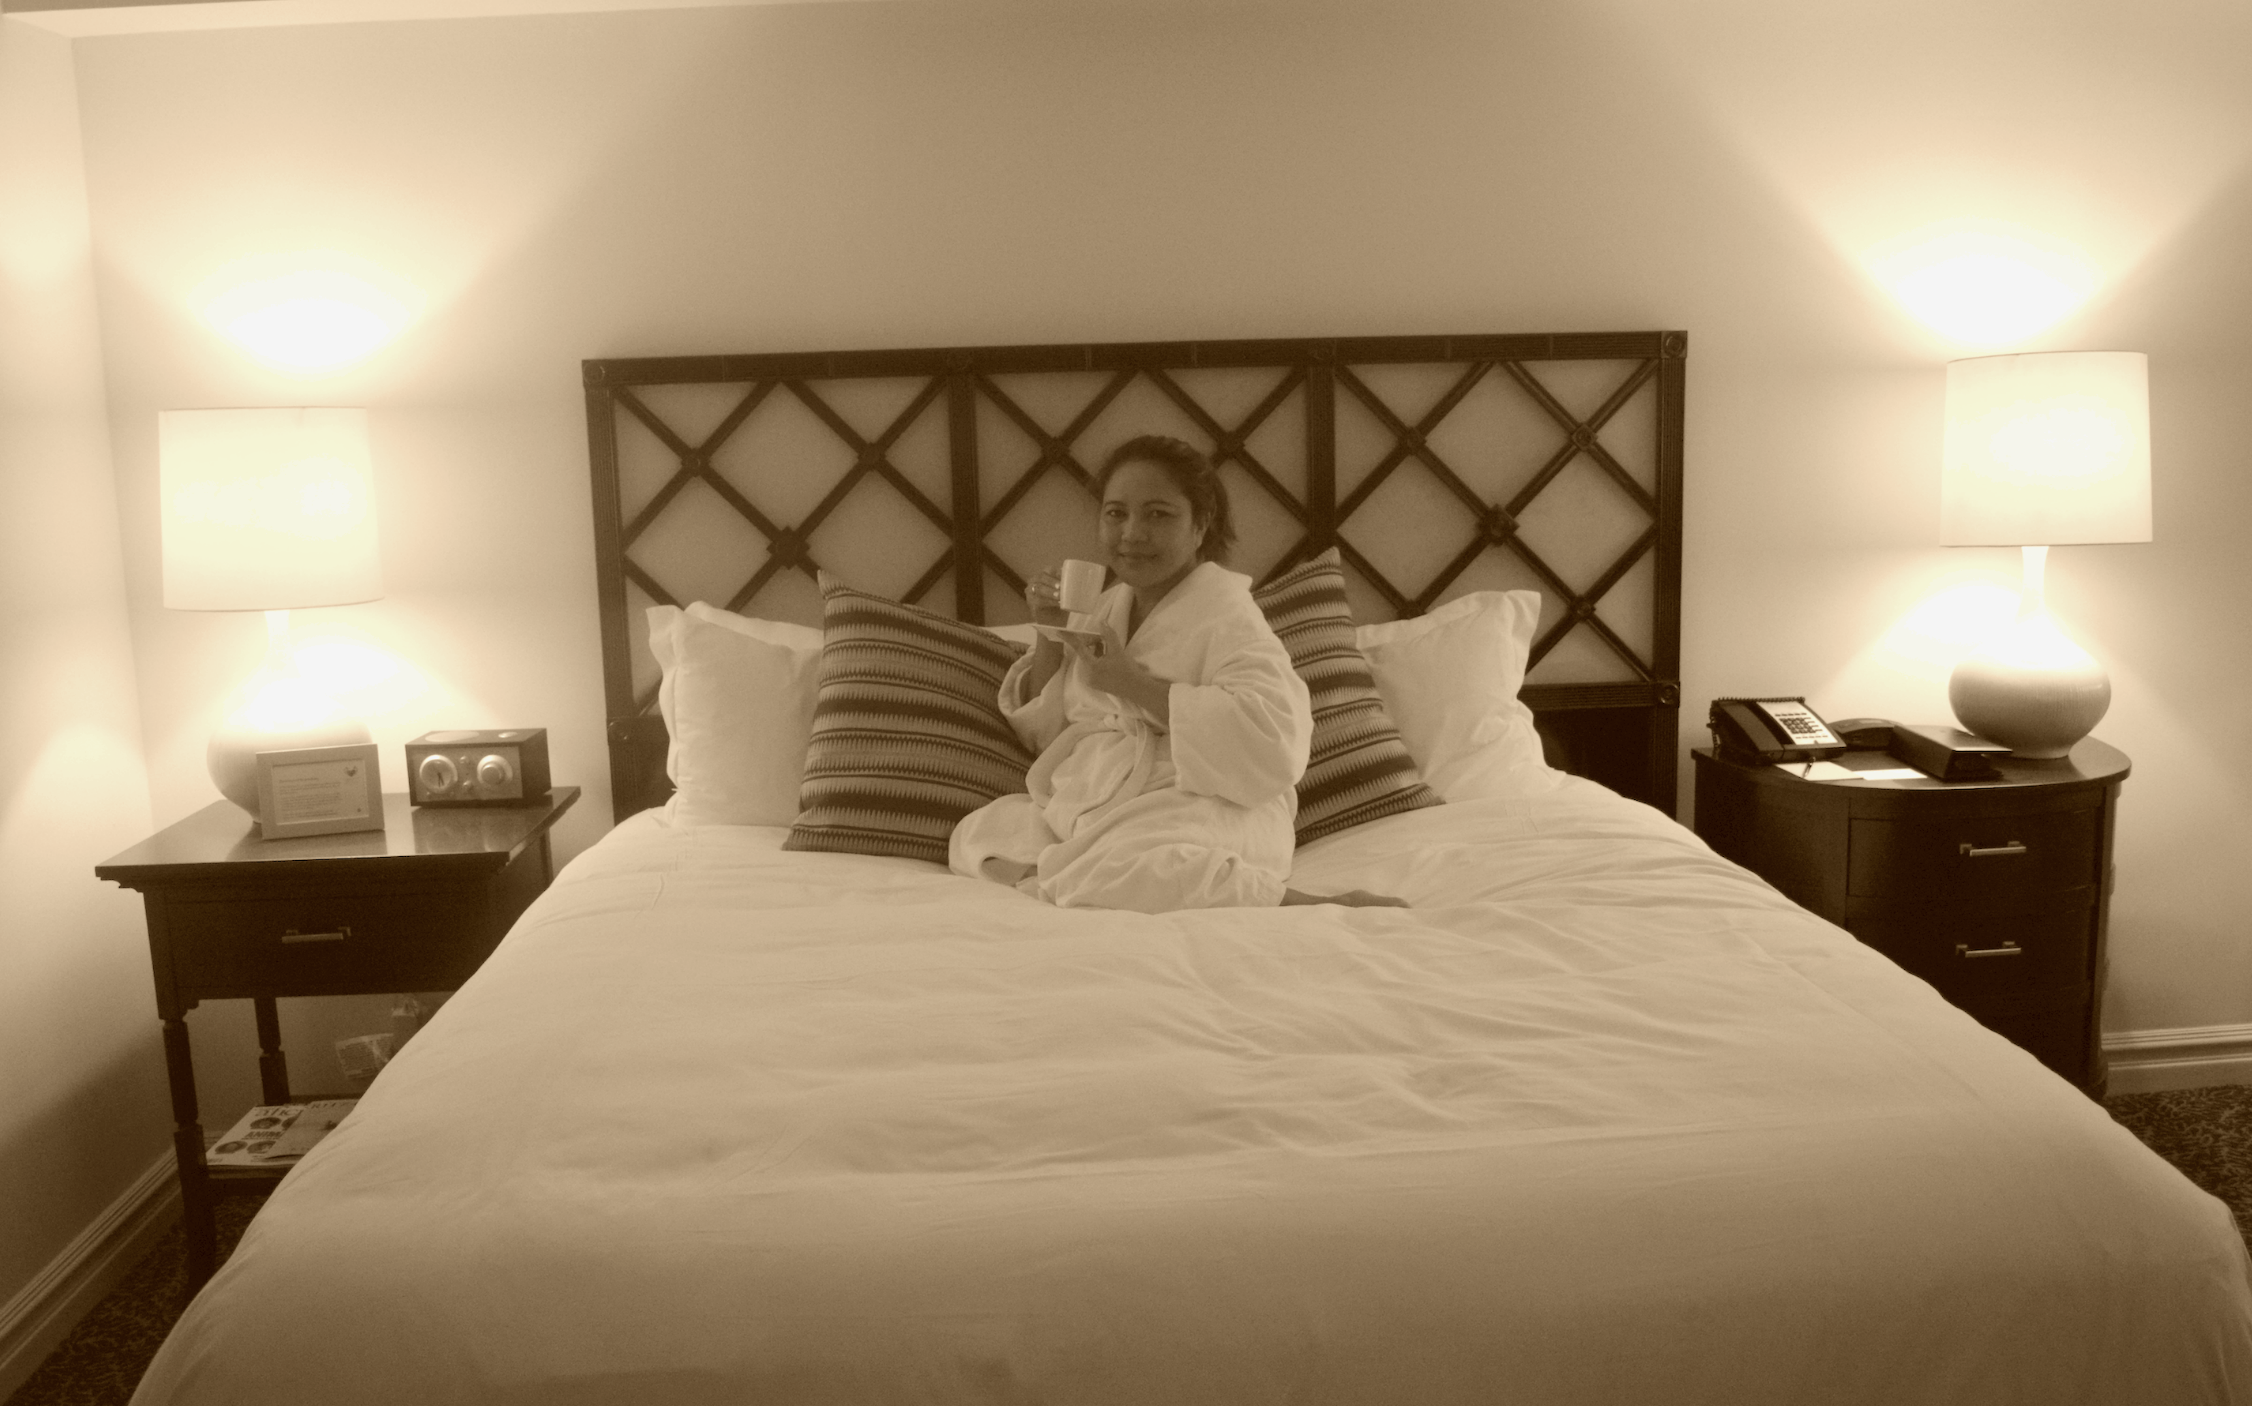 """I love """"The Ultimate Staycation"""" experience at The Ritz-Carlton Pentagon City!"""